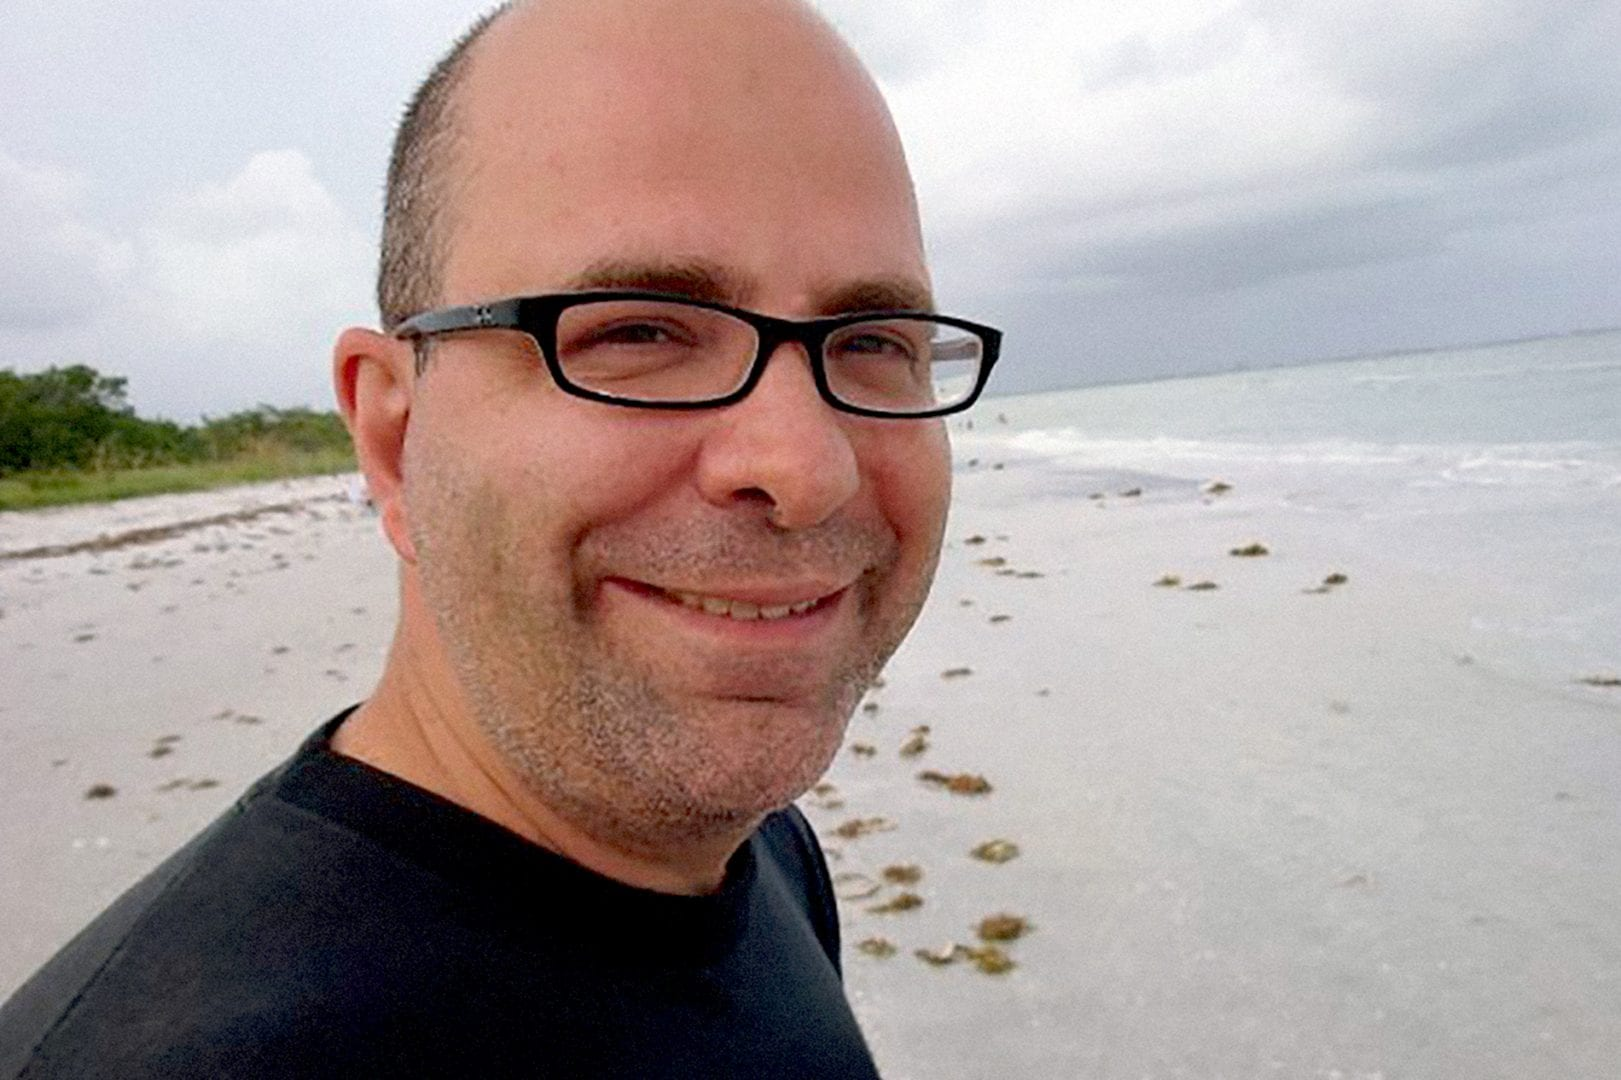 A close up photo of a man with glasses